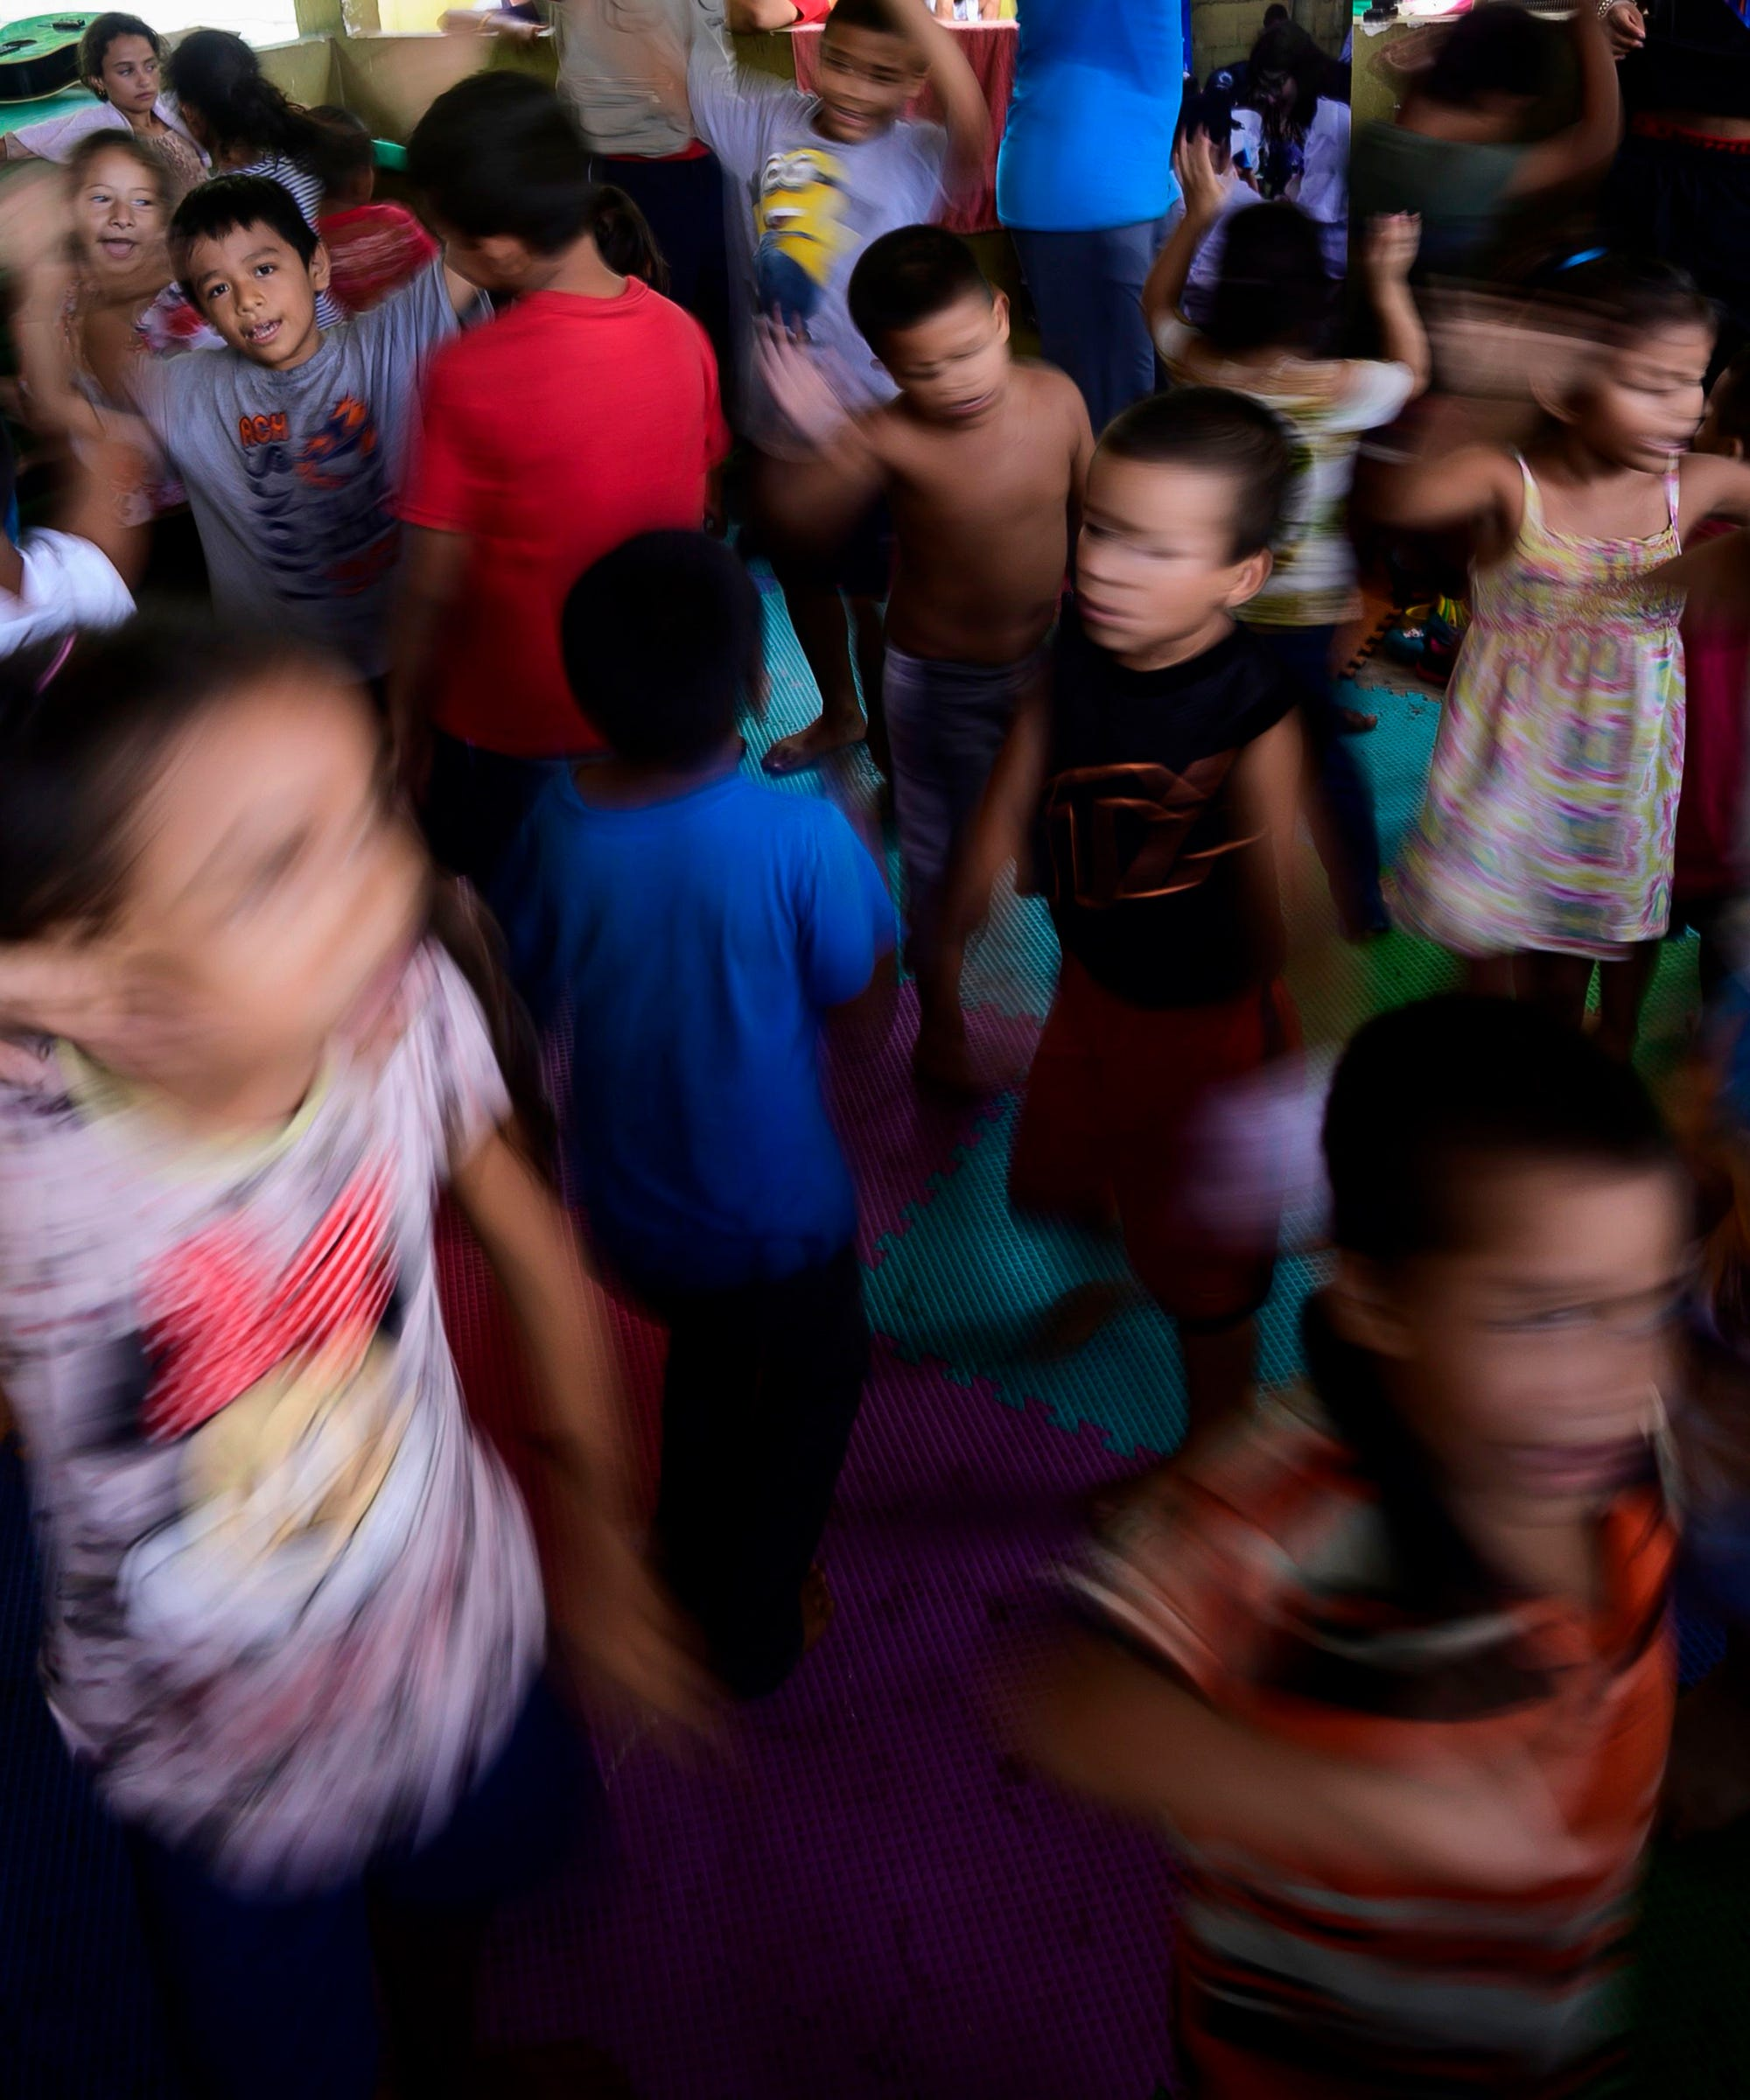 What You Need To Know About The Detention Of Migrant Children At The Border